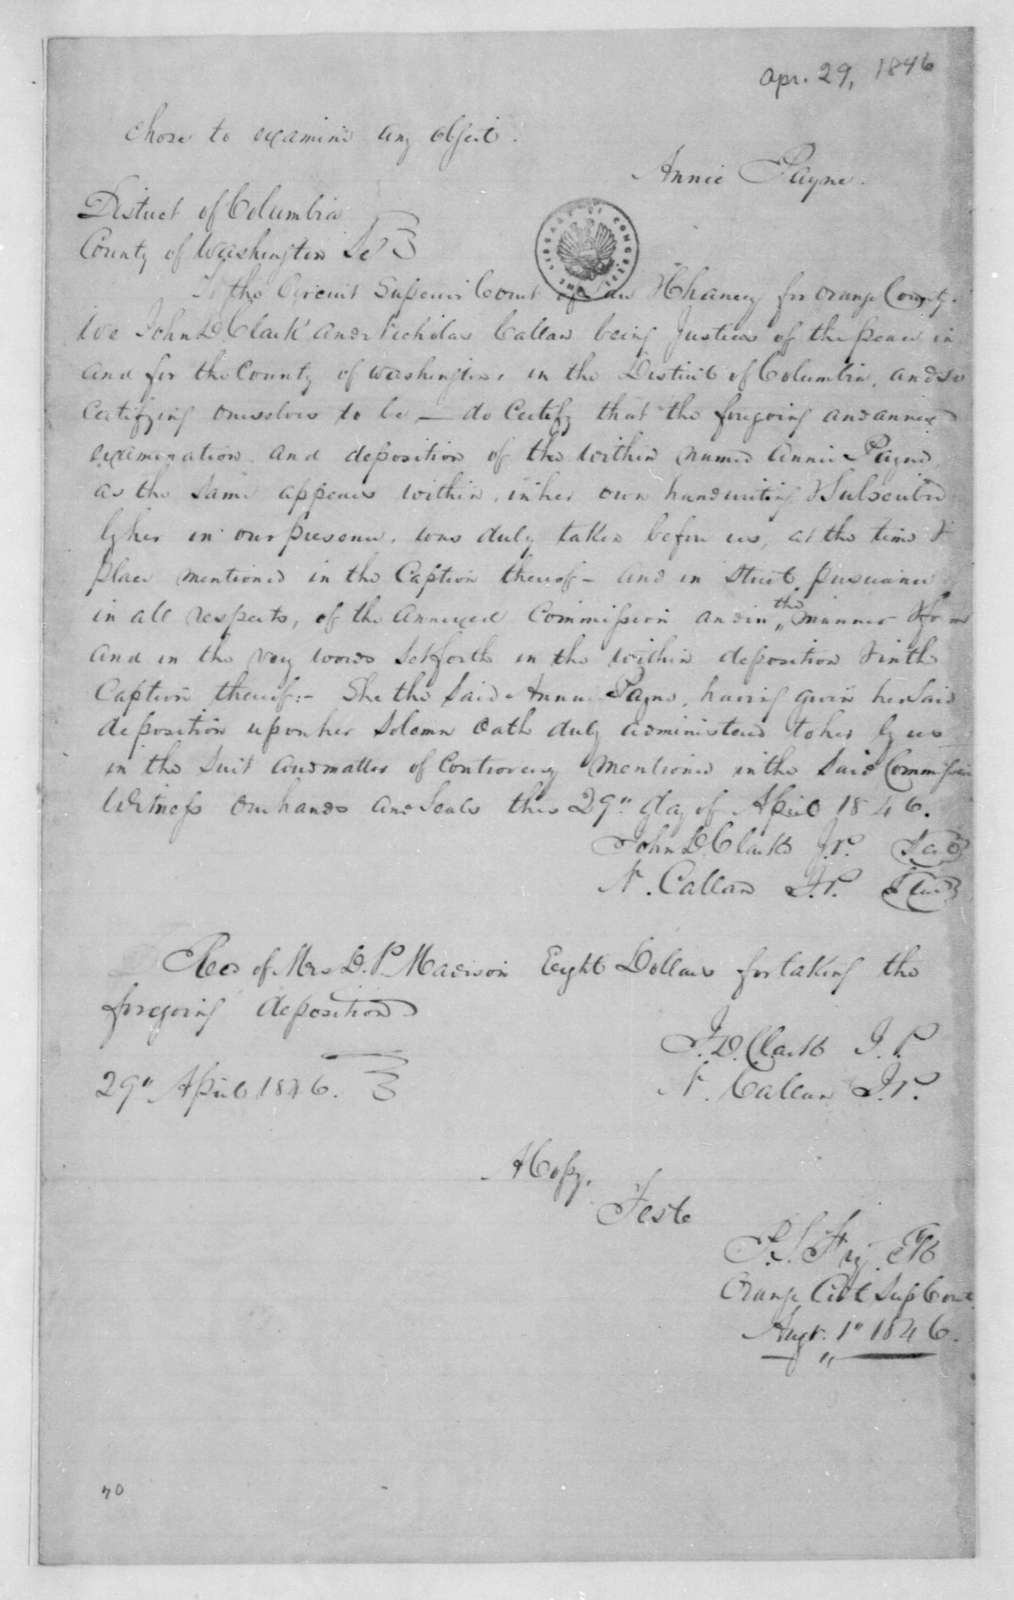 Dolley P. Madison, April 29, 1846. Certification.